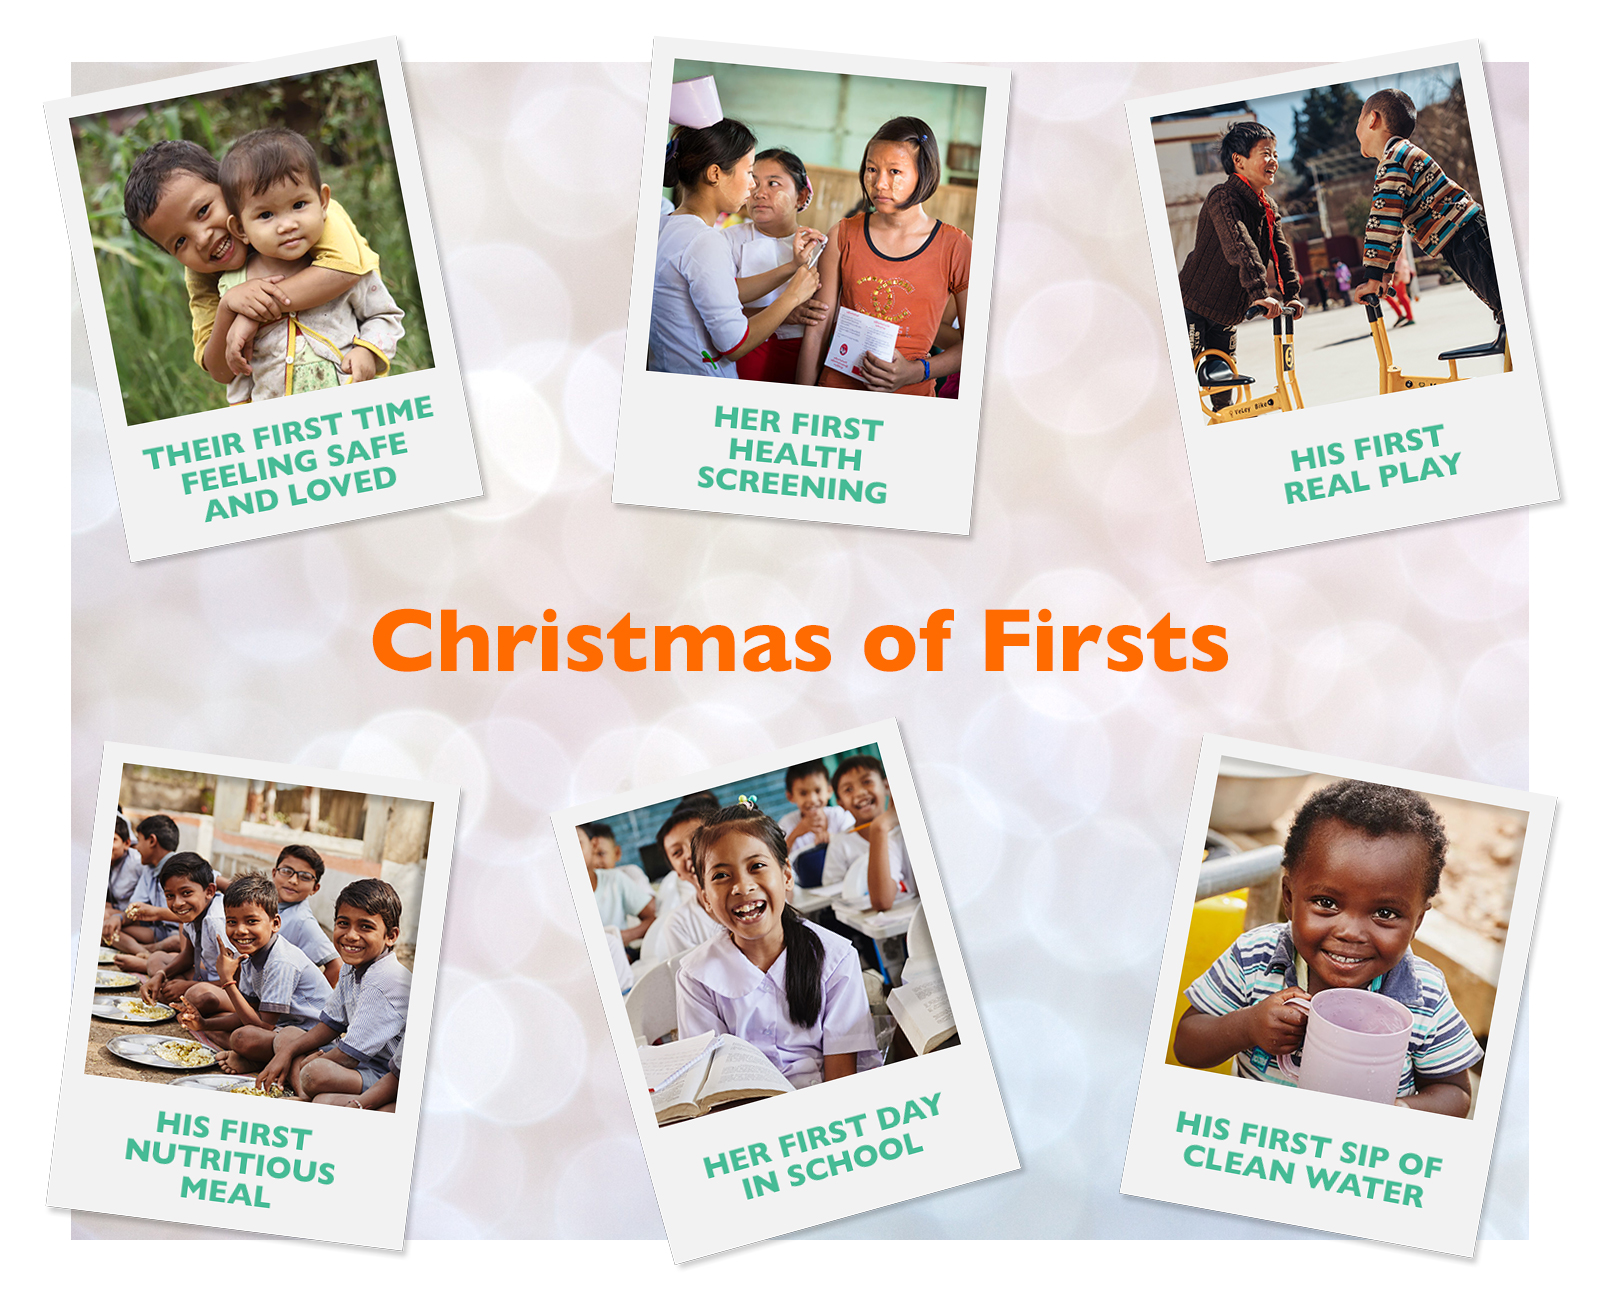 when you sponsor a chid-in-need this Christmas, you gift them with new experiences of firsts!